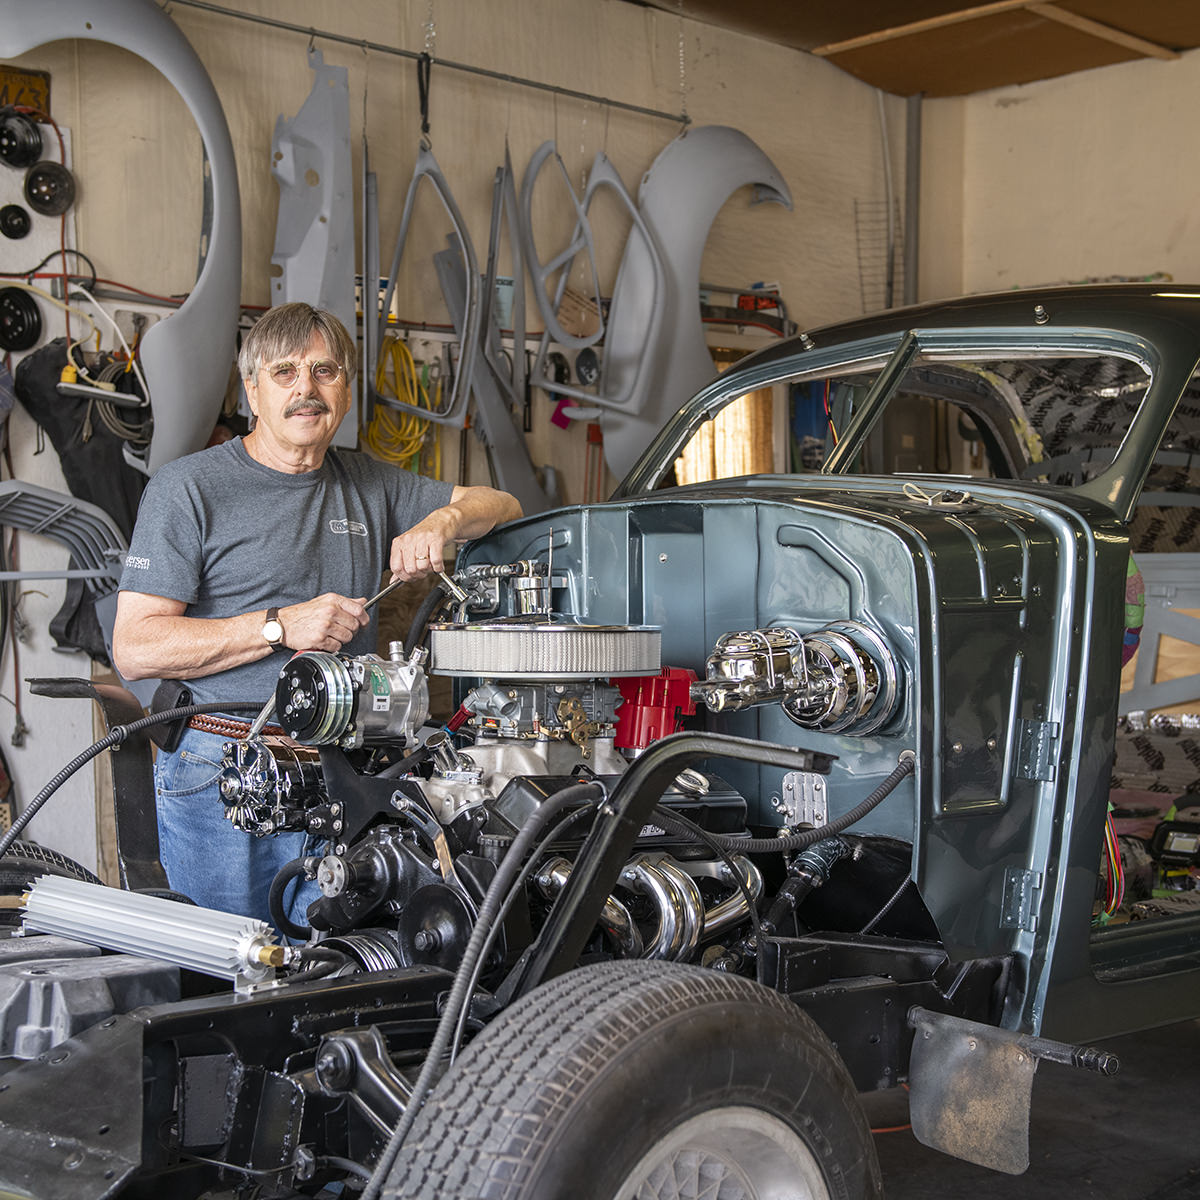 Larry Welsch buys, restores and sells old cars, including the 1937 Cord shown here.